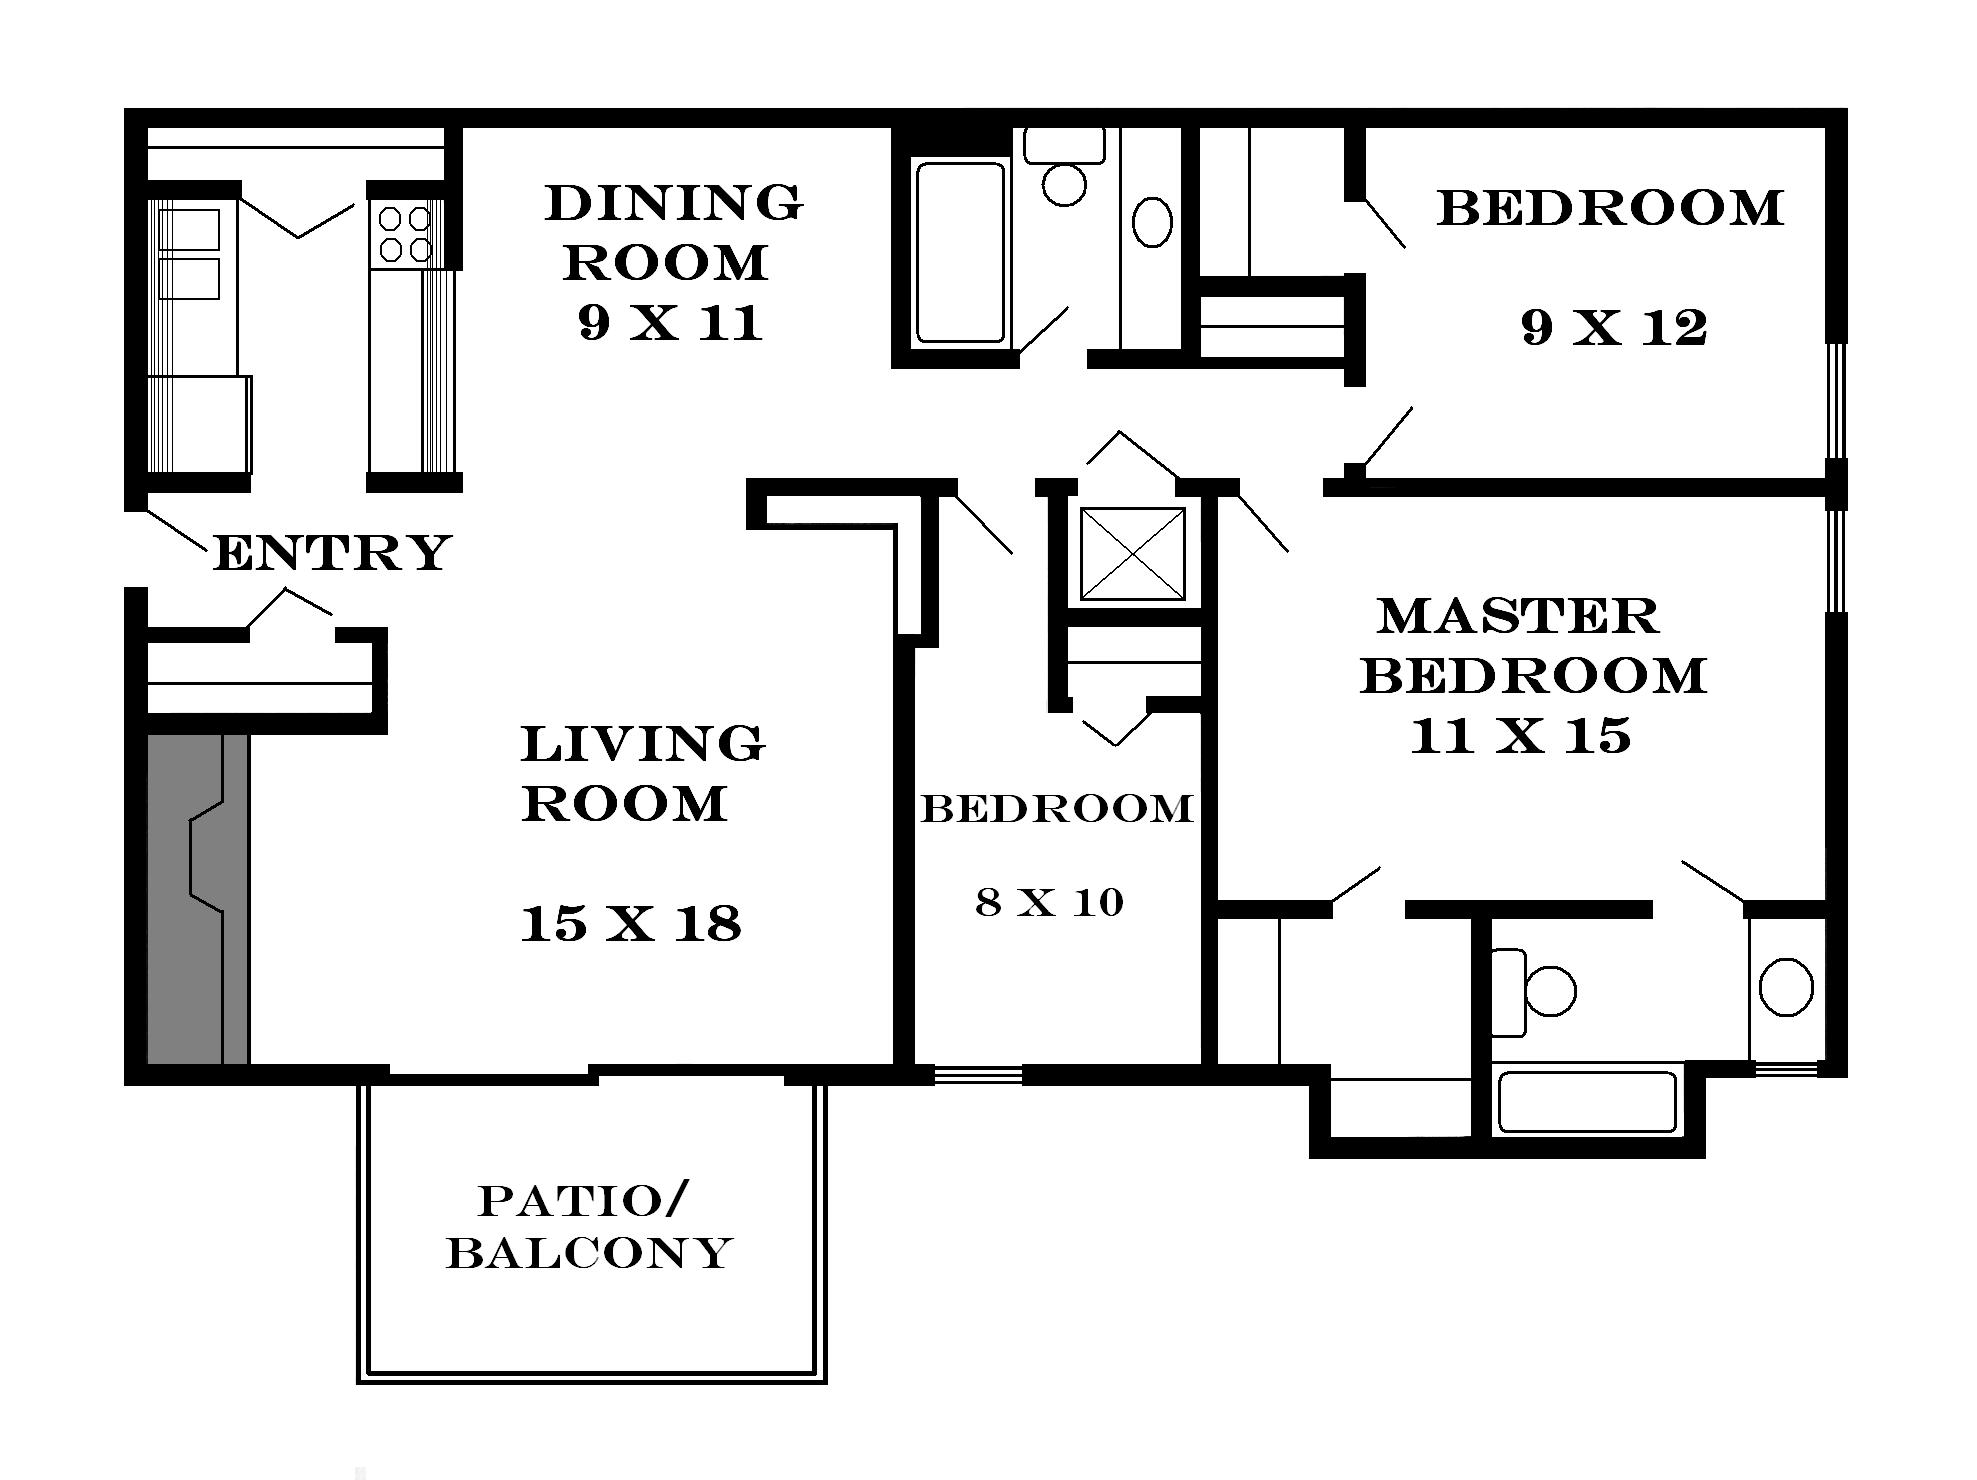 House Building Plans as well 20wide2s additionally Building Drawing Design Elements Site Plan additionally Building Wiring Circuit Diagram further Stock Illustration Draft Plan Arrangement All Furniture Architect Black White Two Storeyed House Ground Floor Image57425758. on residential blueprint symbols